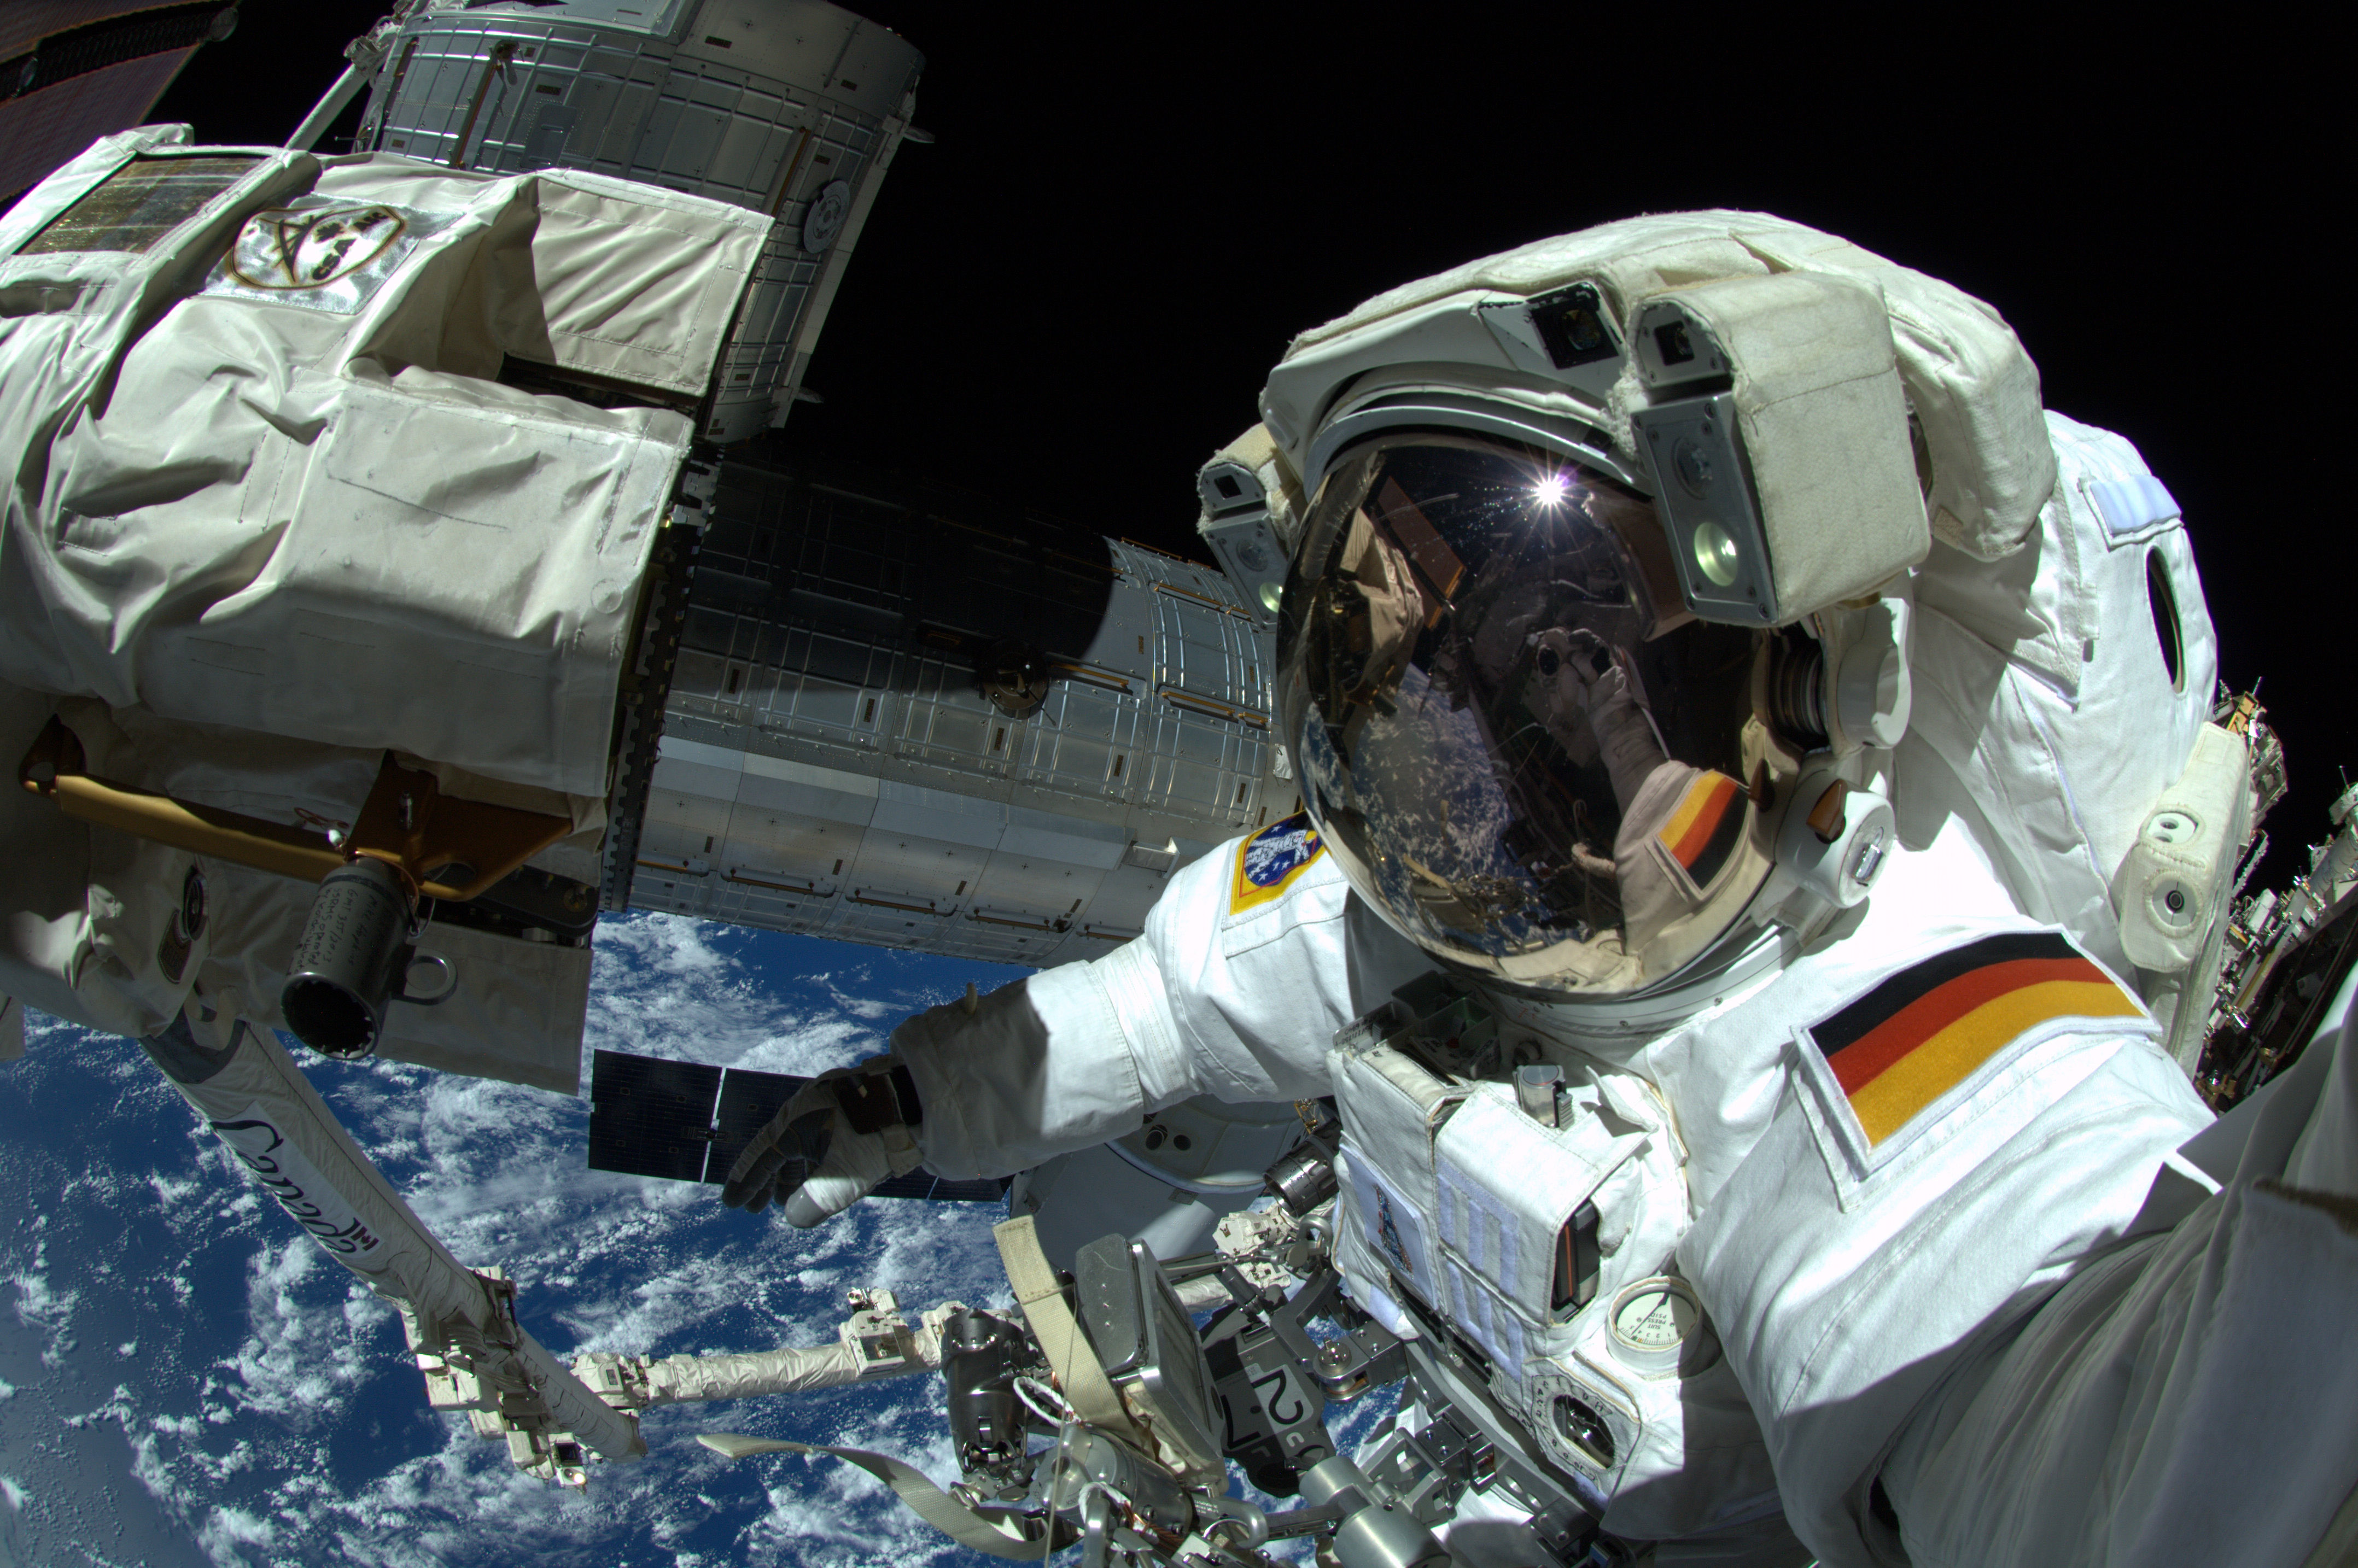 In this handout photo provided by the European Space Agency (ESA), German ESA astronaut Alexander Gerst takes a 'selfie' during his spacewalk, whilst aboard the International Space Station (ISS) on October 7, 2014 in Space.